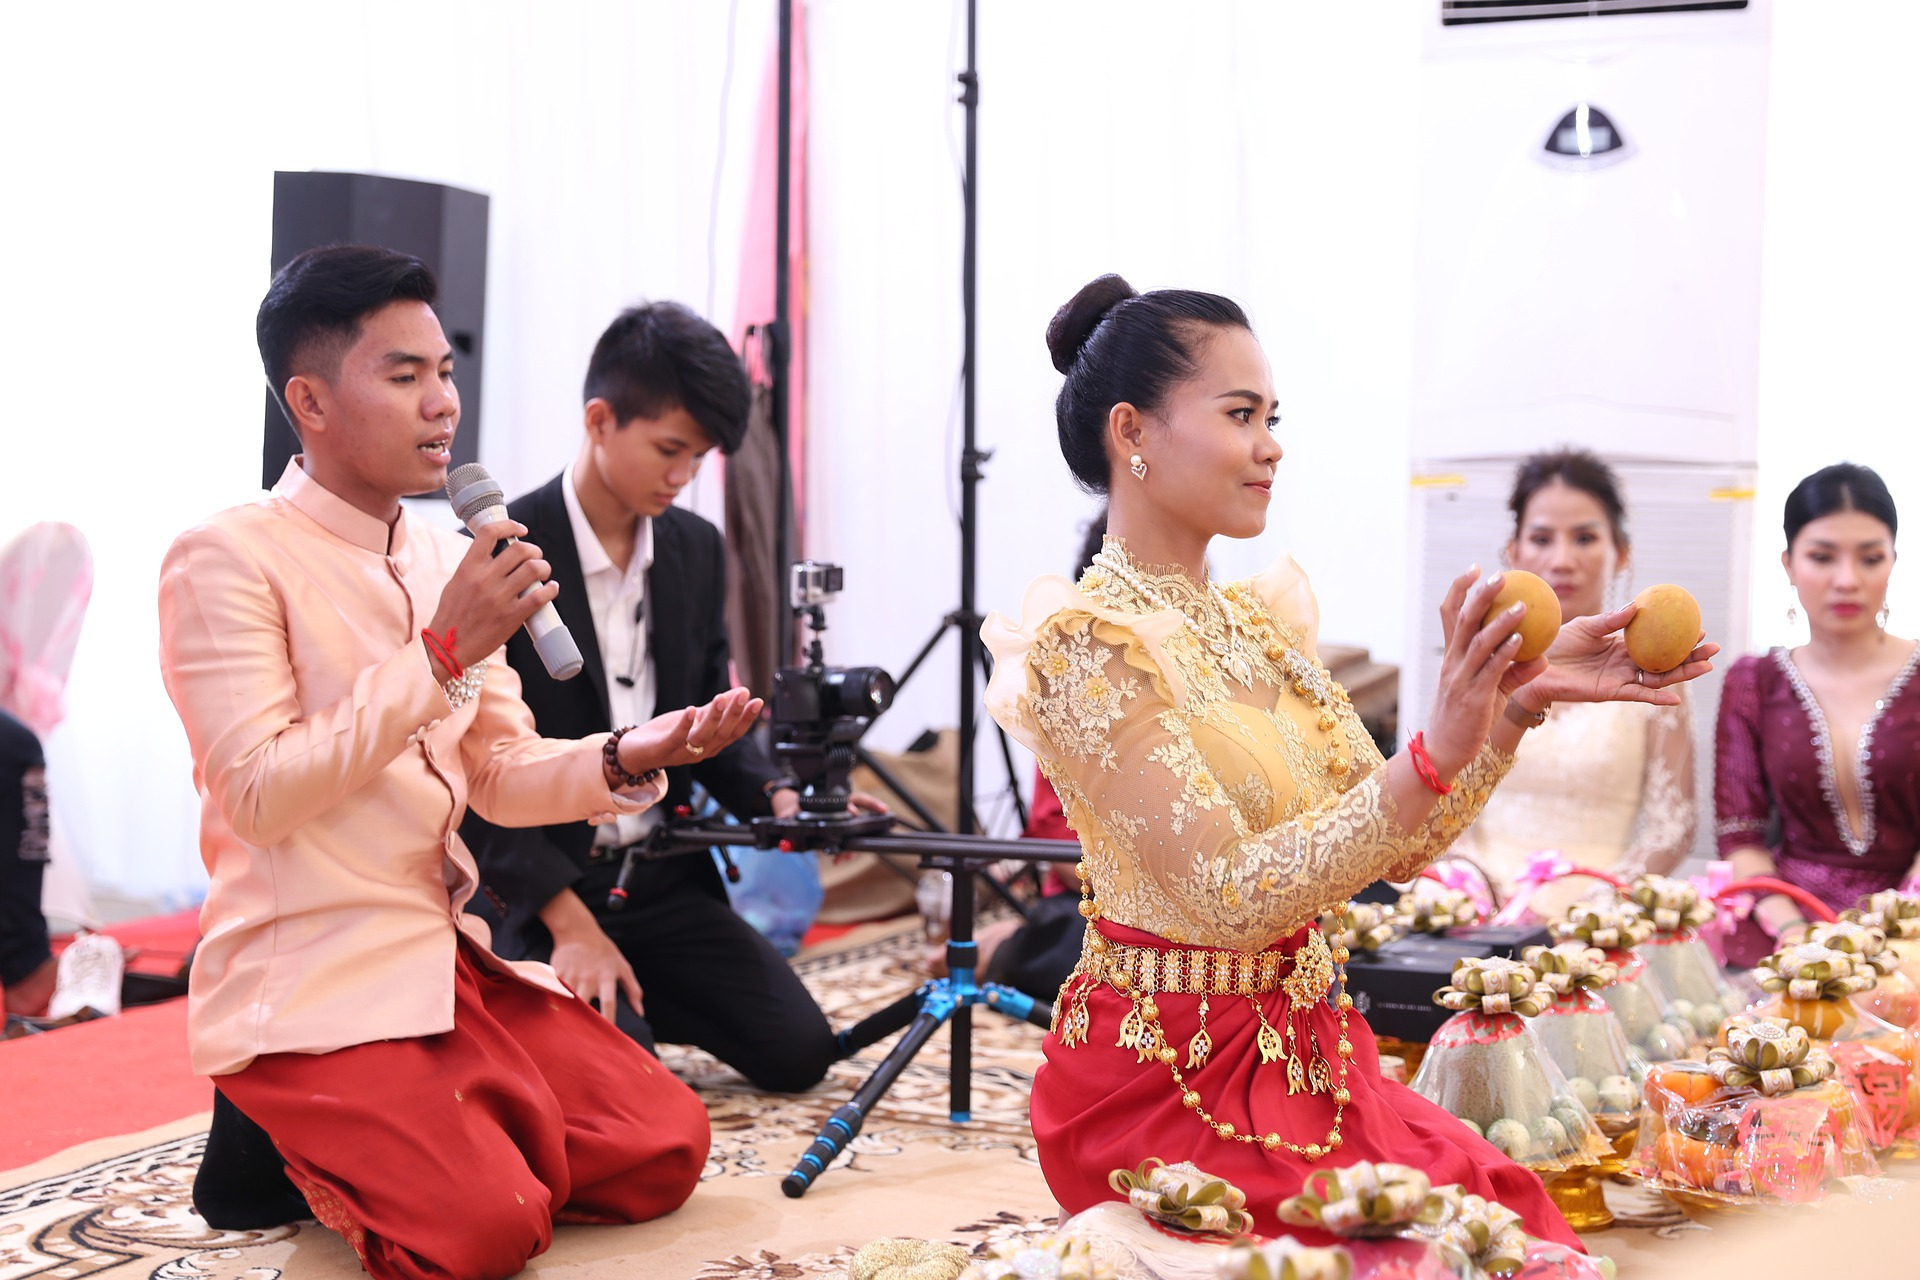 Three Day-long Cambodian Weddings-Lesser Known Facts About Cambodia For the Tourists